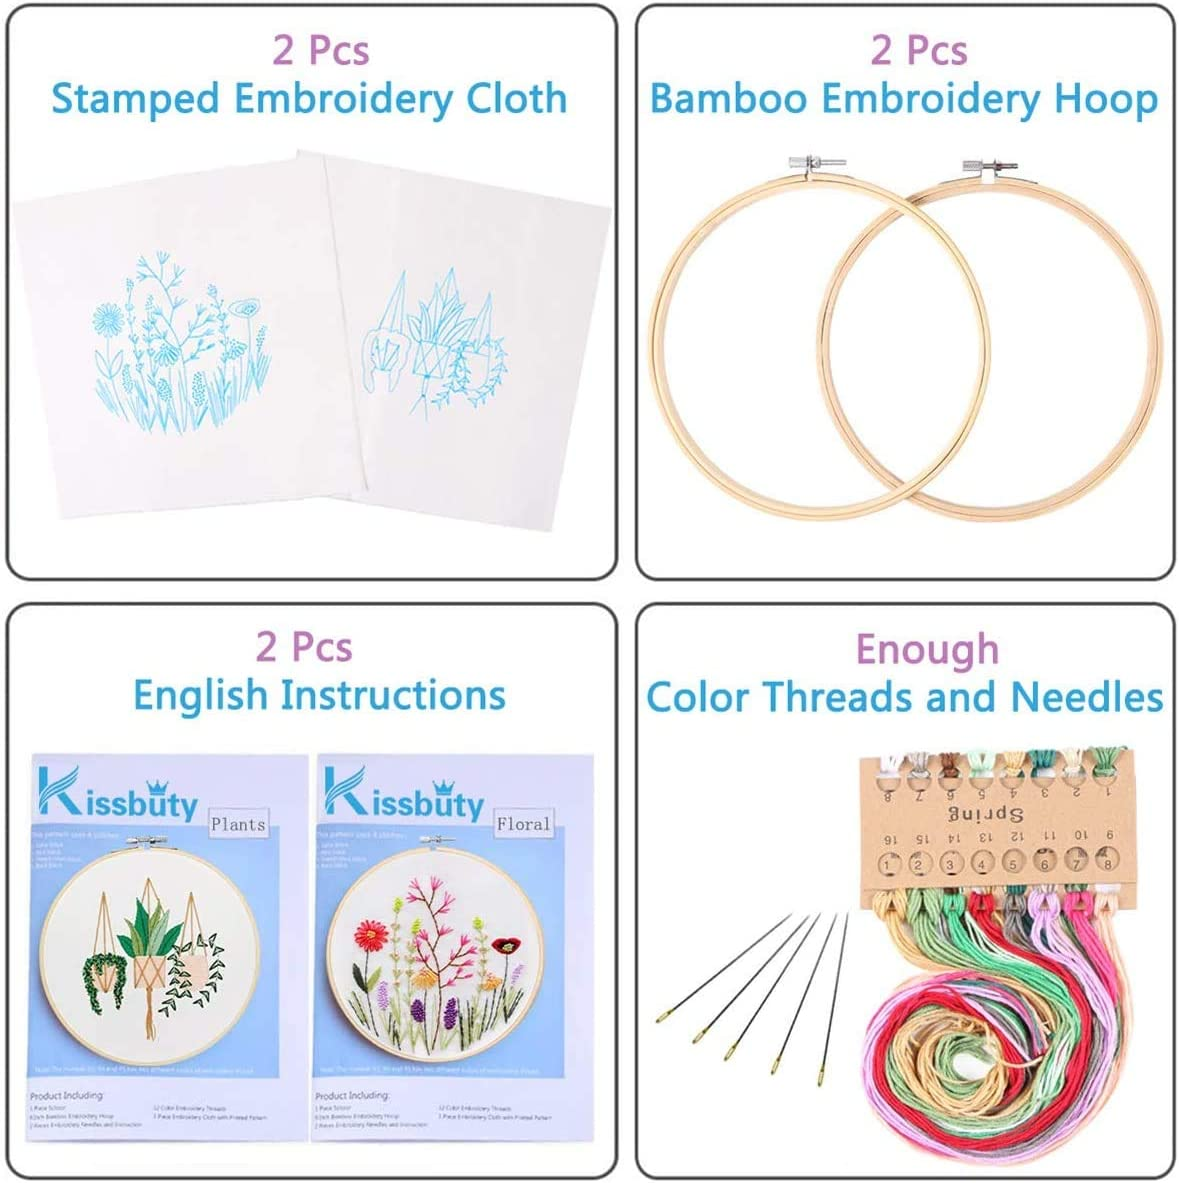 Embroidery Starter Kit with Pattern Embroidery Needles 3 Pack Cross Stitch Kits with 3 Patterns Color Threads and Tools Embroidery Kit for Beginners Adults with Embroidery Hoops